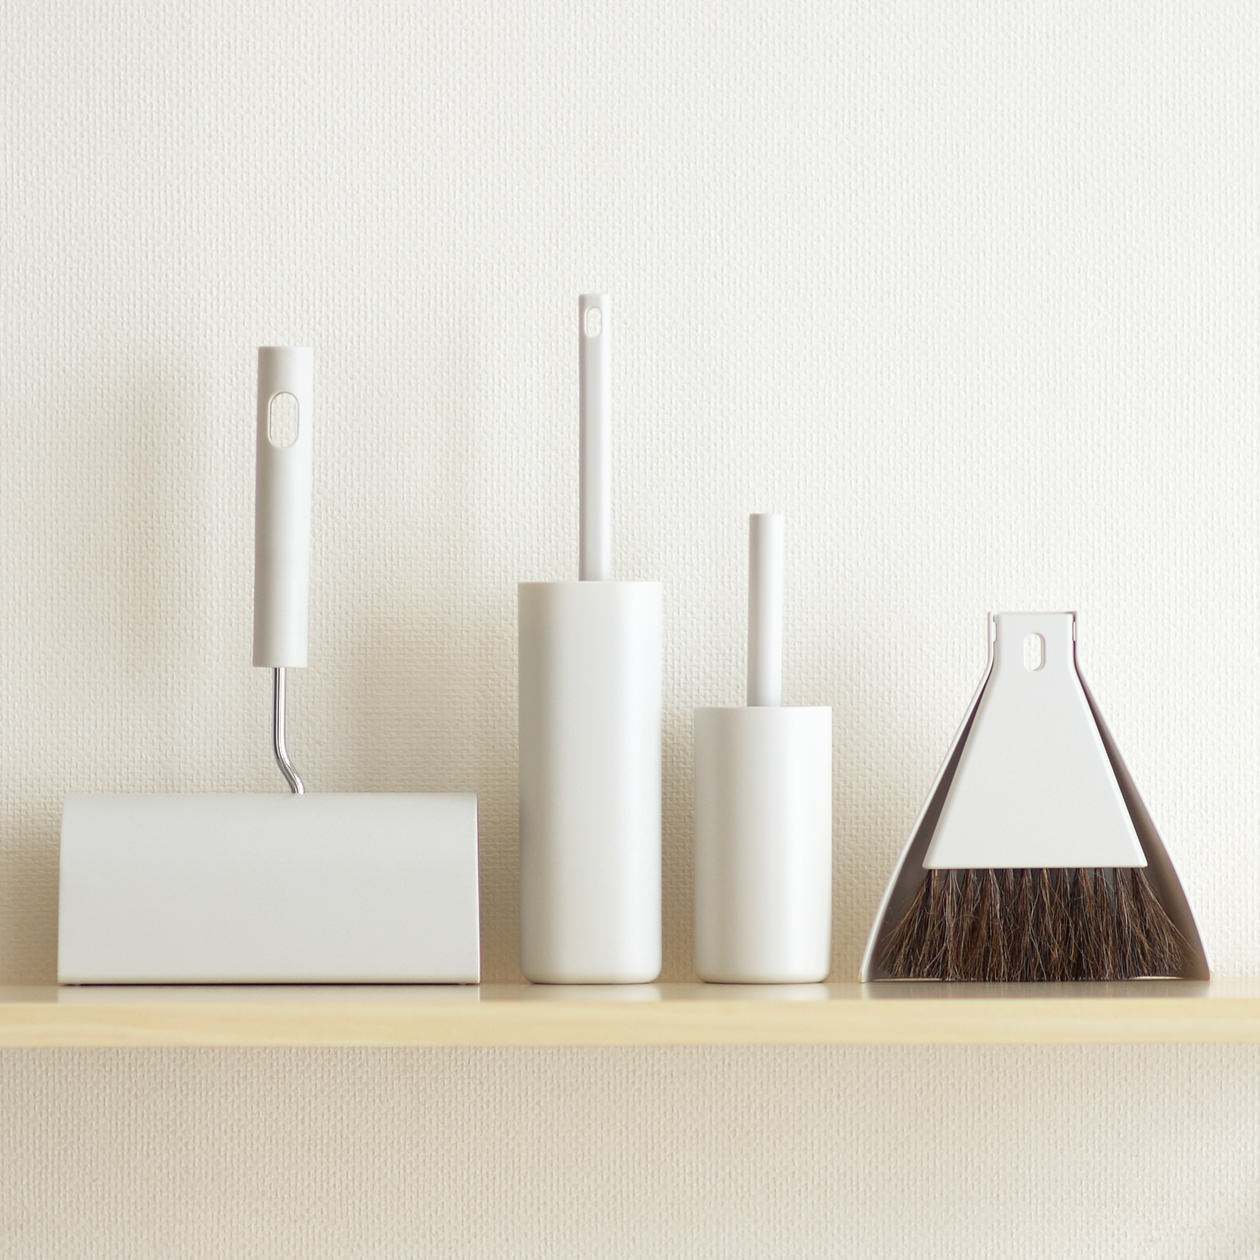 Muji Cleaning System, $3+